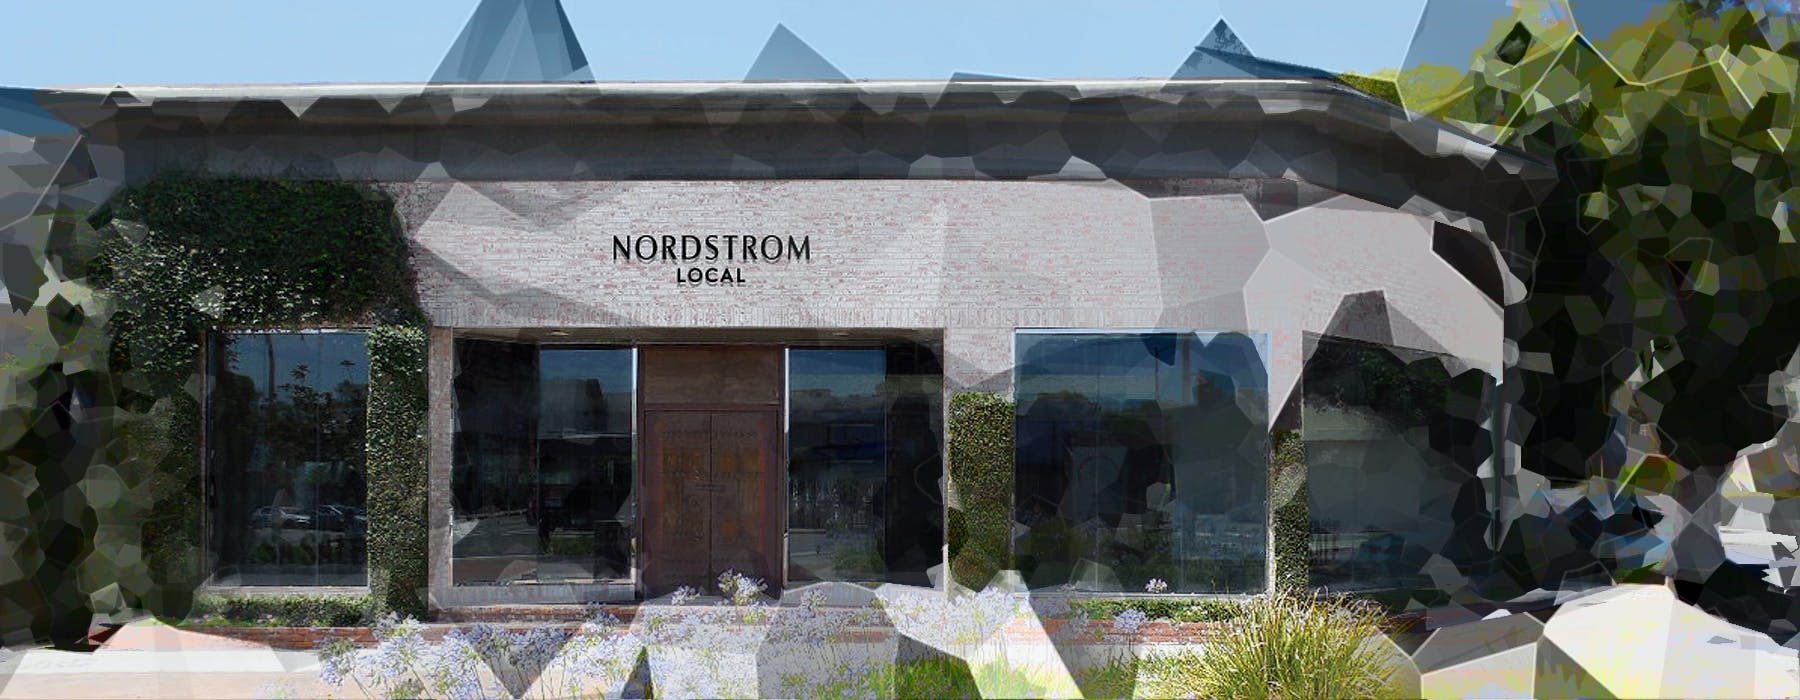 9f29560fe4f43 The art of the possible  Nordstrom Local